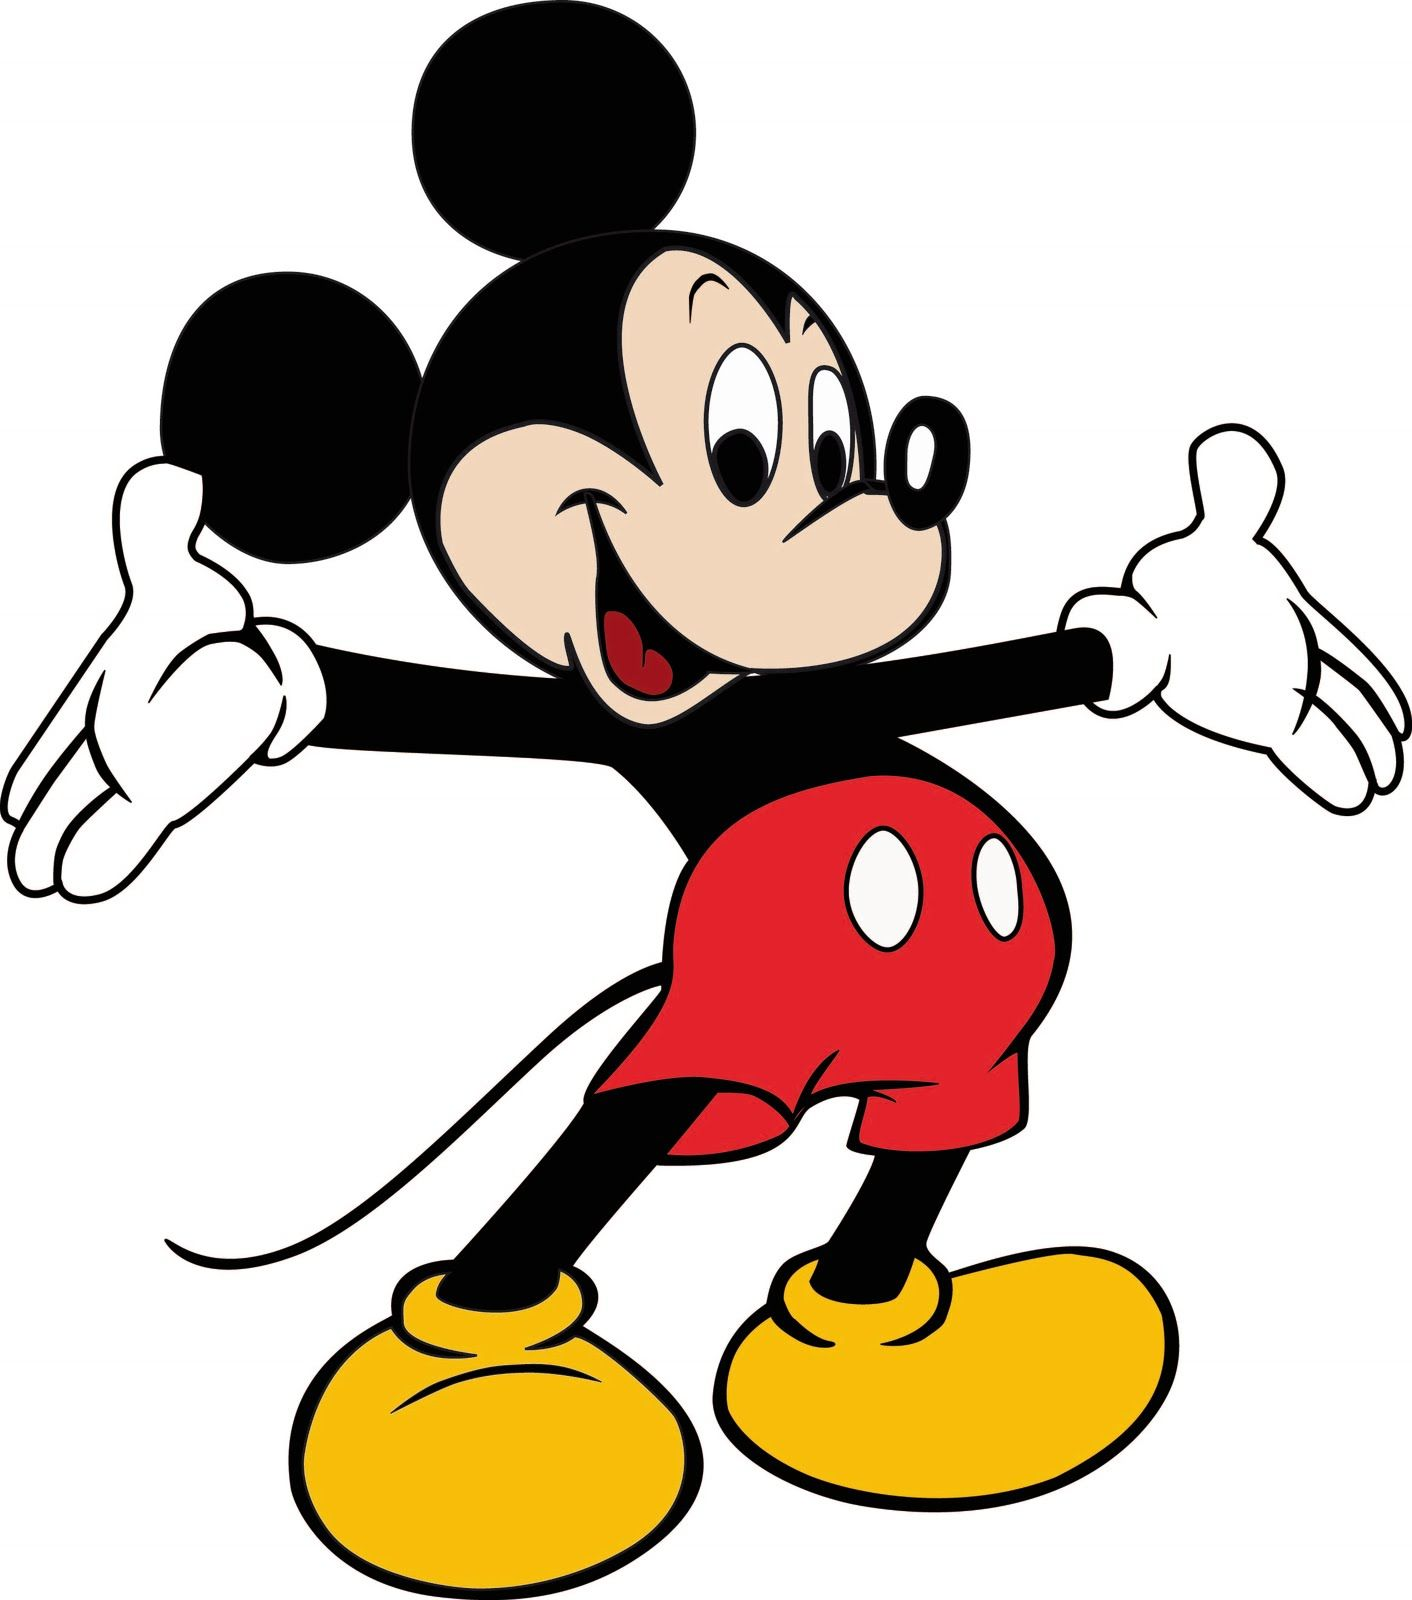 mickey mouse clipart.